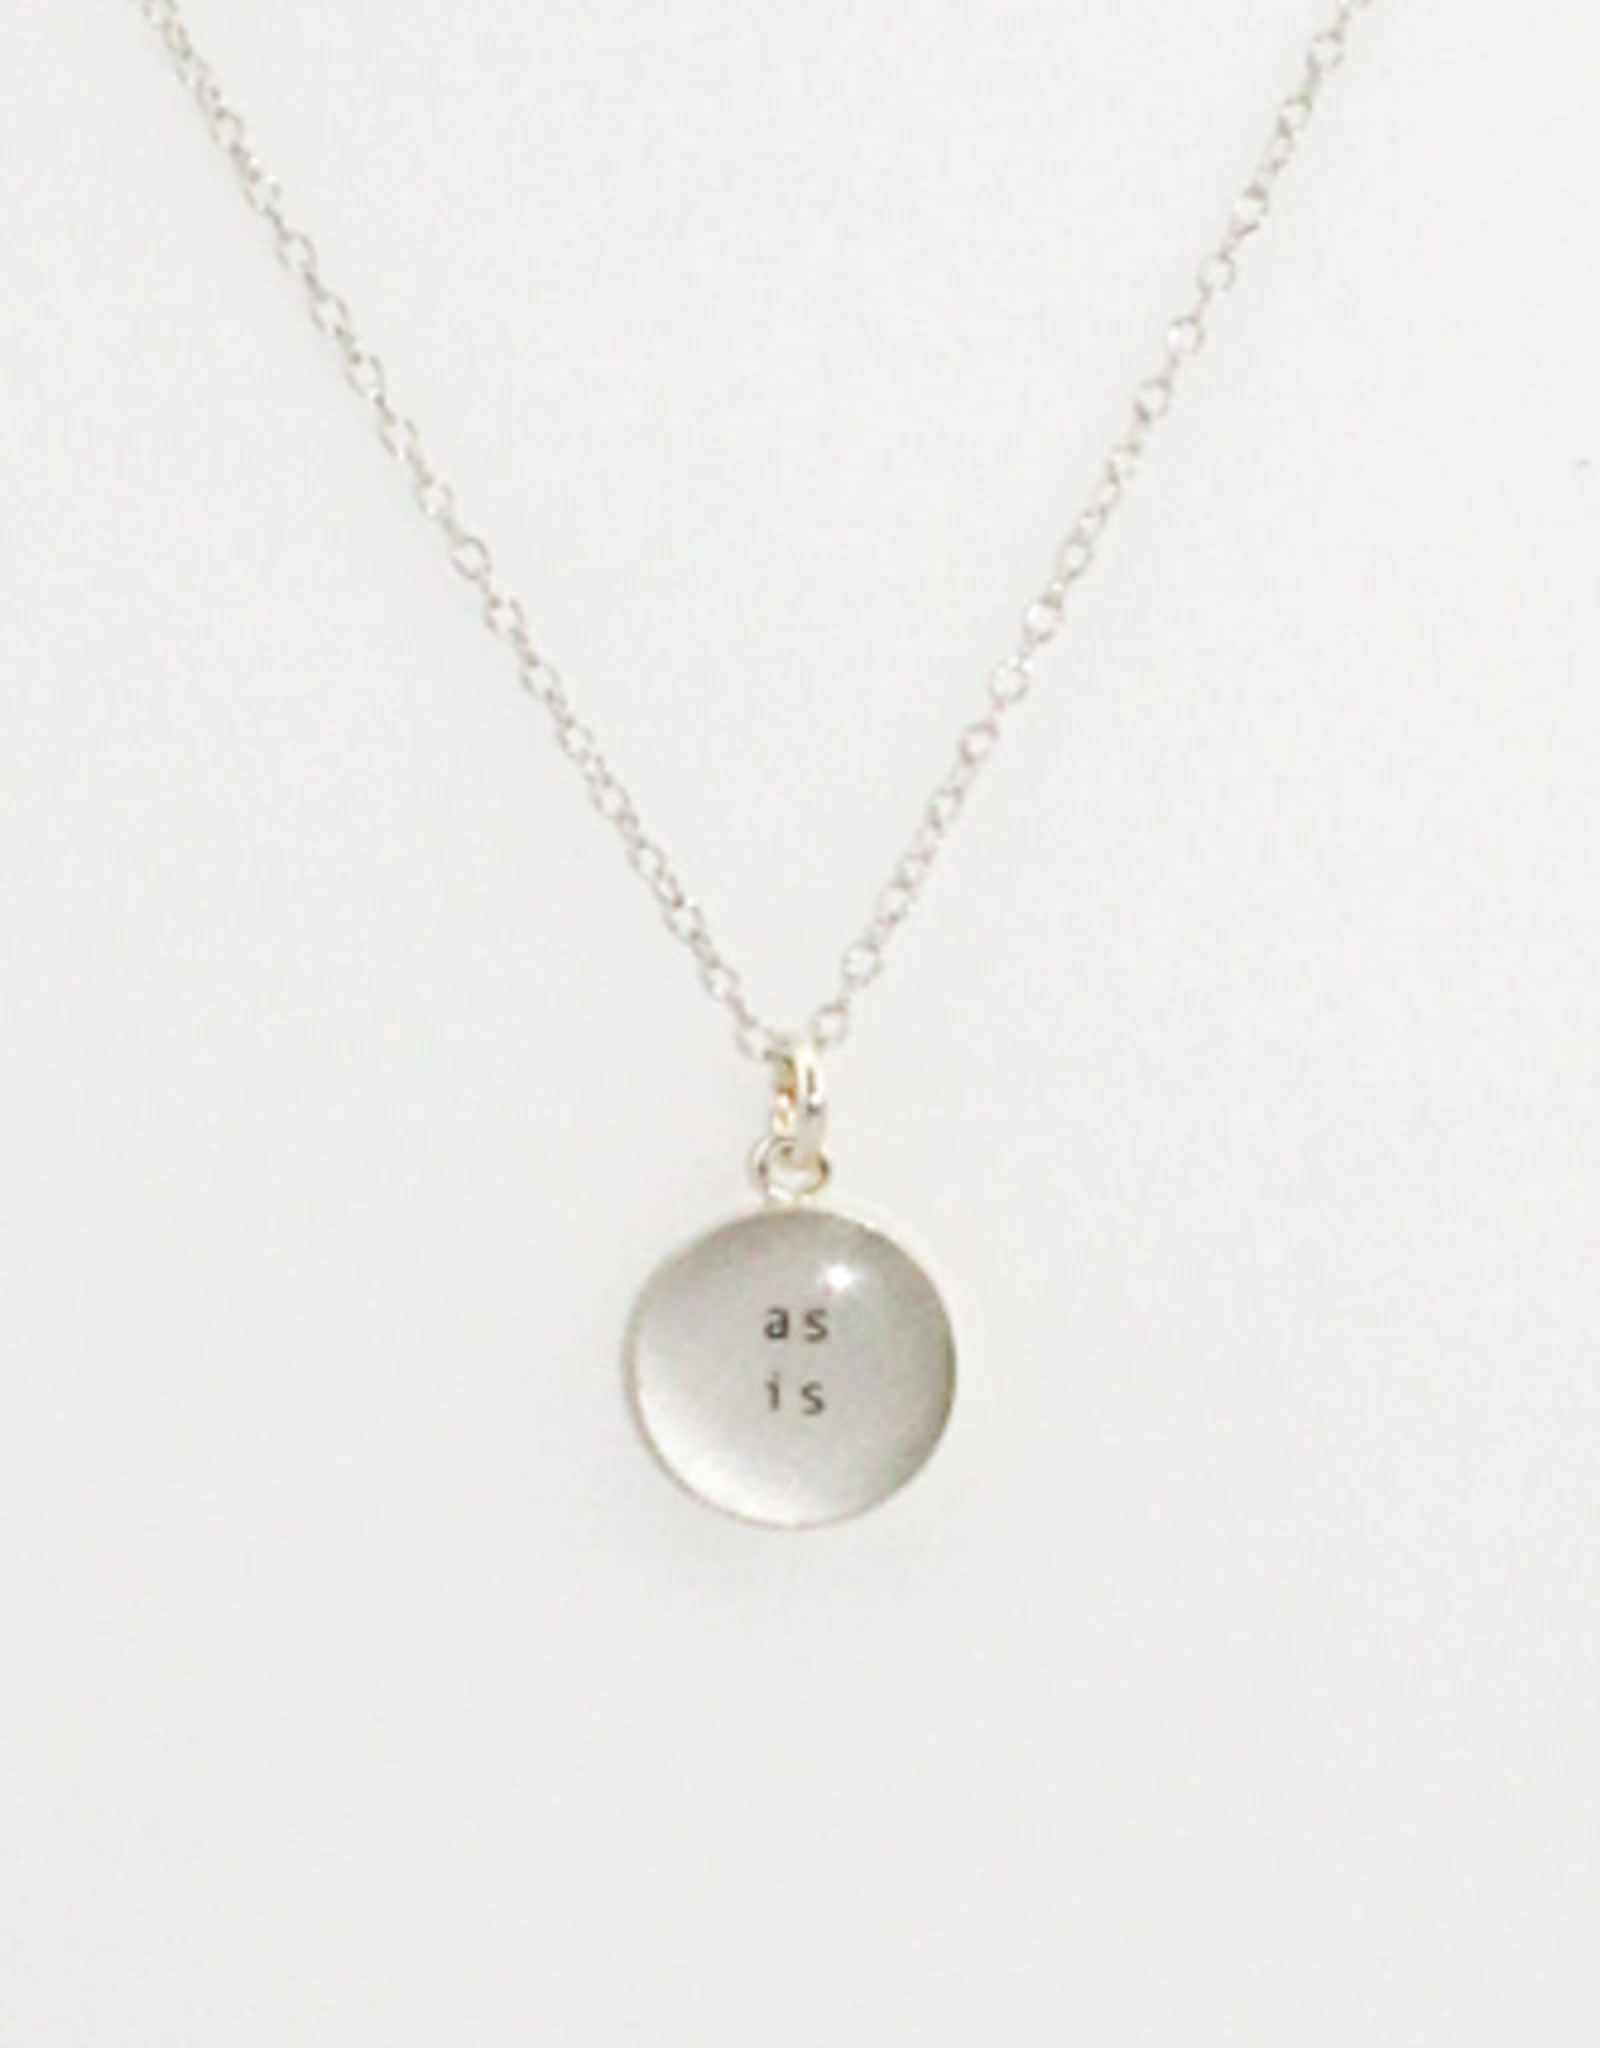 Everyday Artifacts As Is Necklace